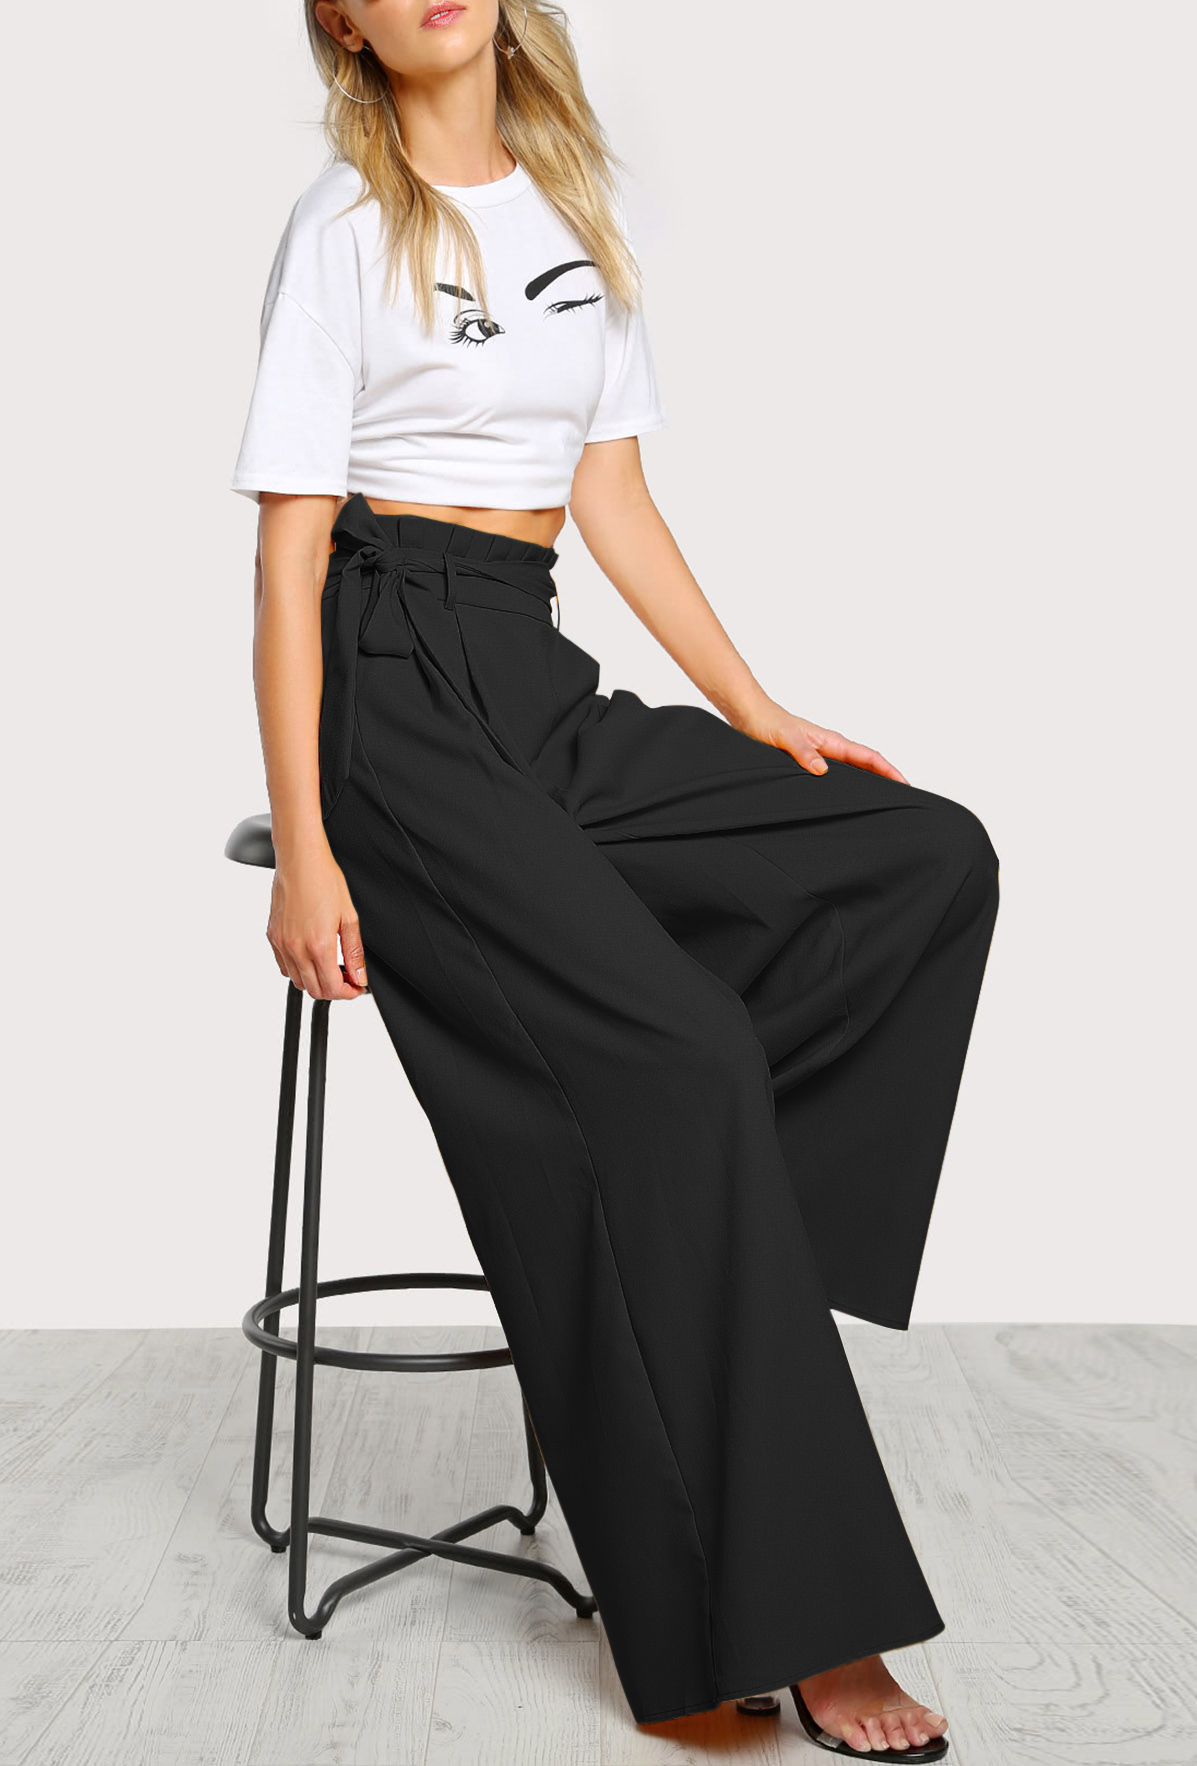 b0d8cb33792 Set- Frill Waist Belted Black Palazzo Pants And Top - Street Style Store